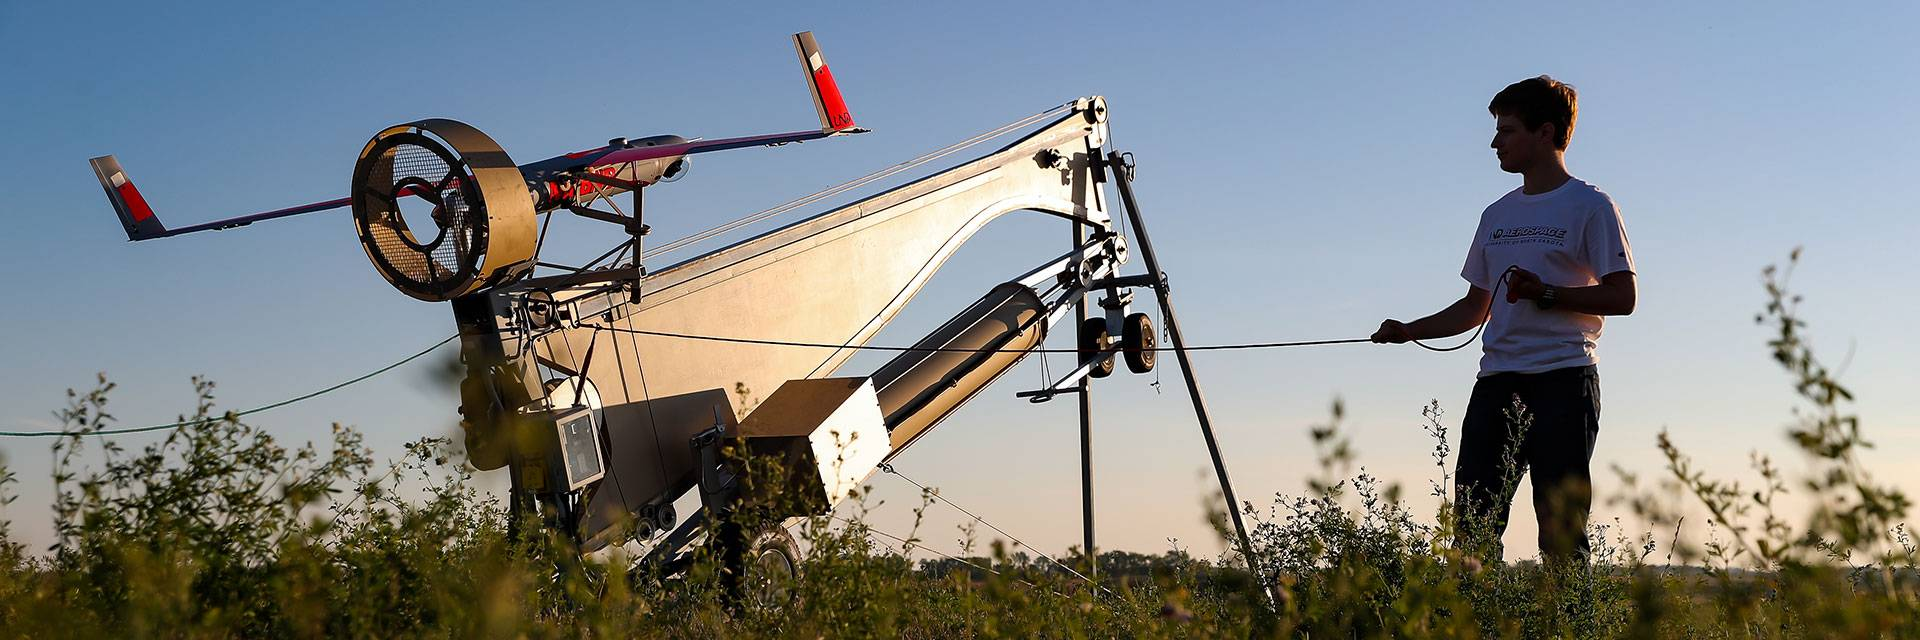 UAS launcher ready for takeoff